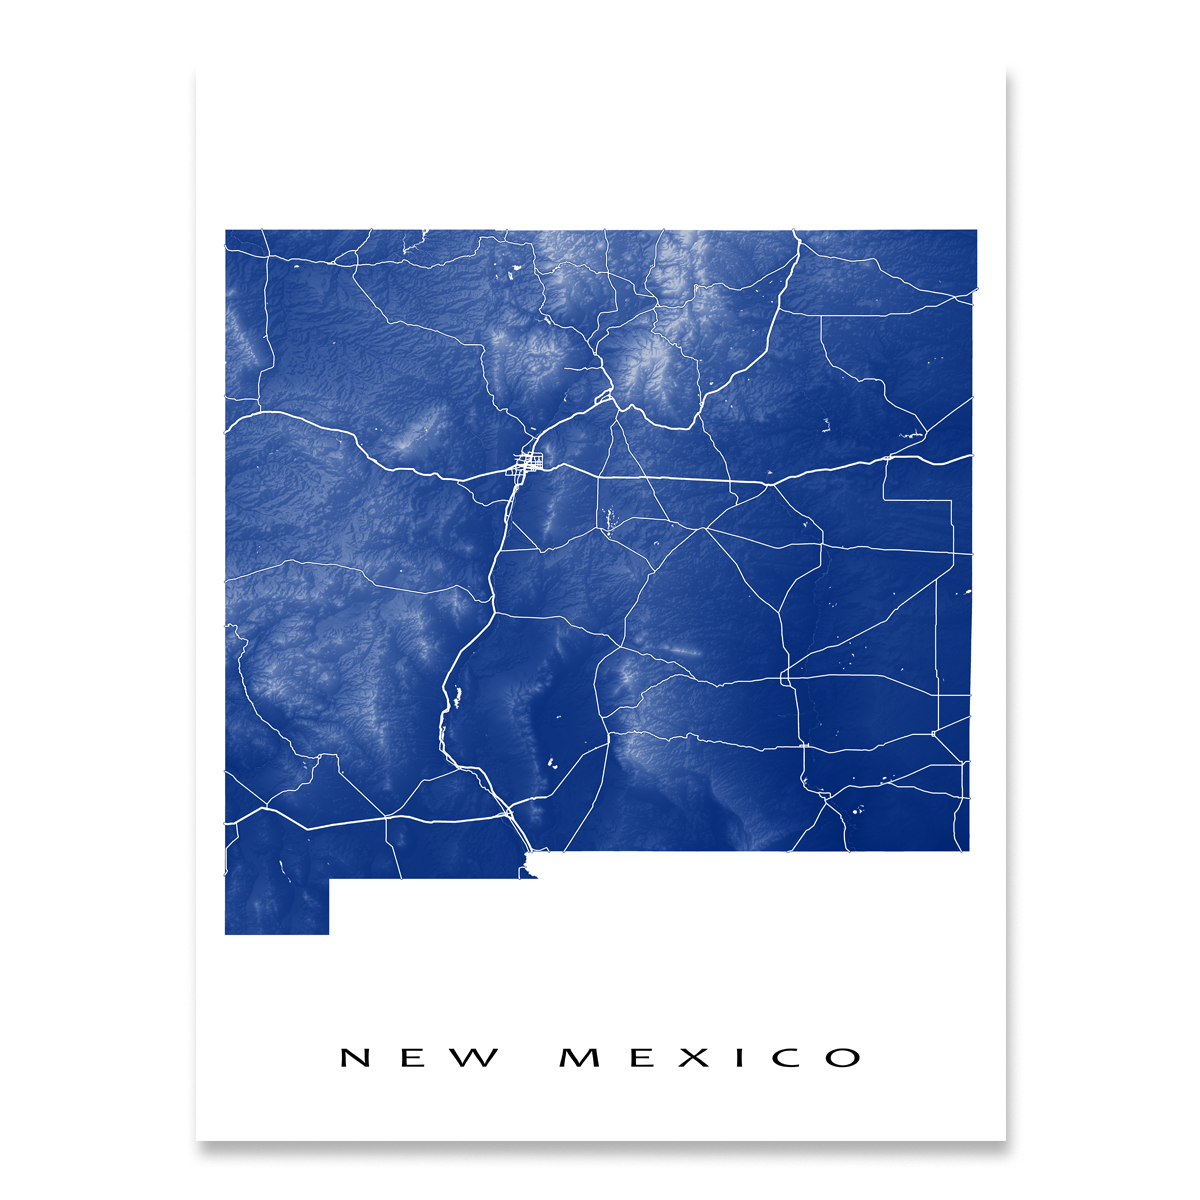 New Mexico Map Print, USA State, NM